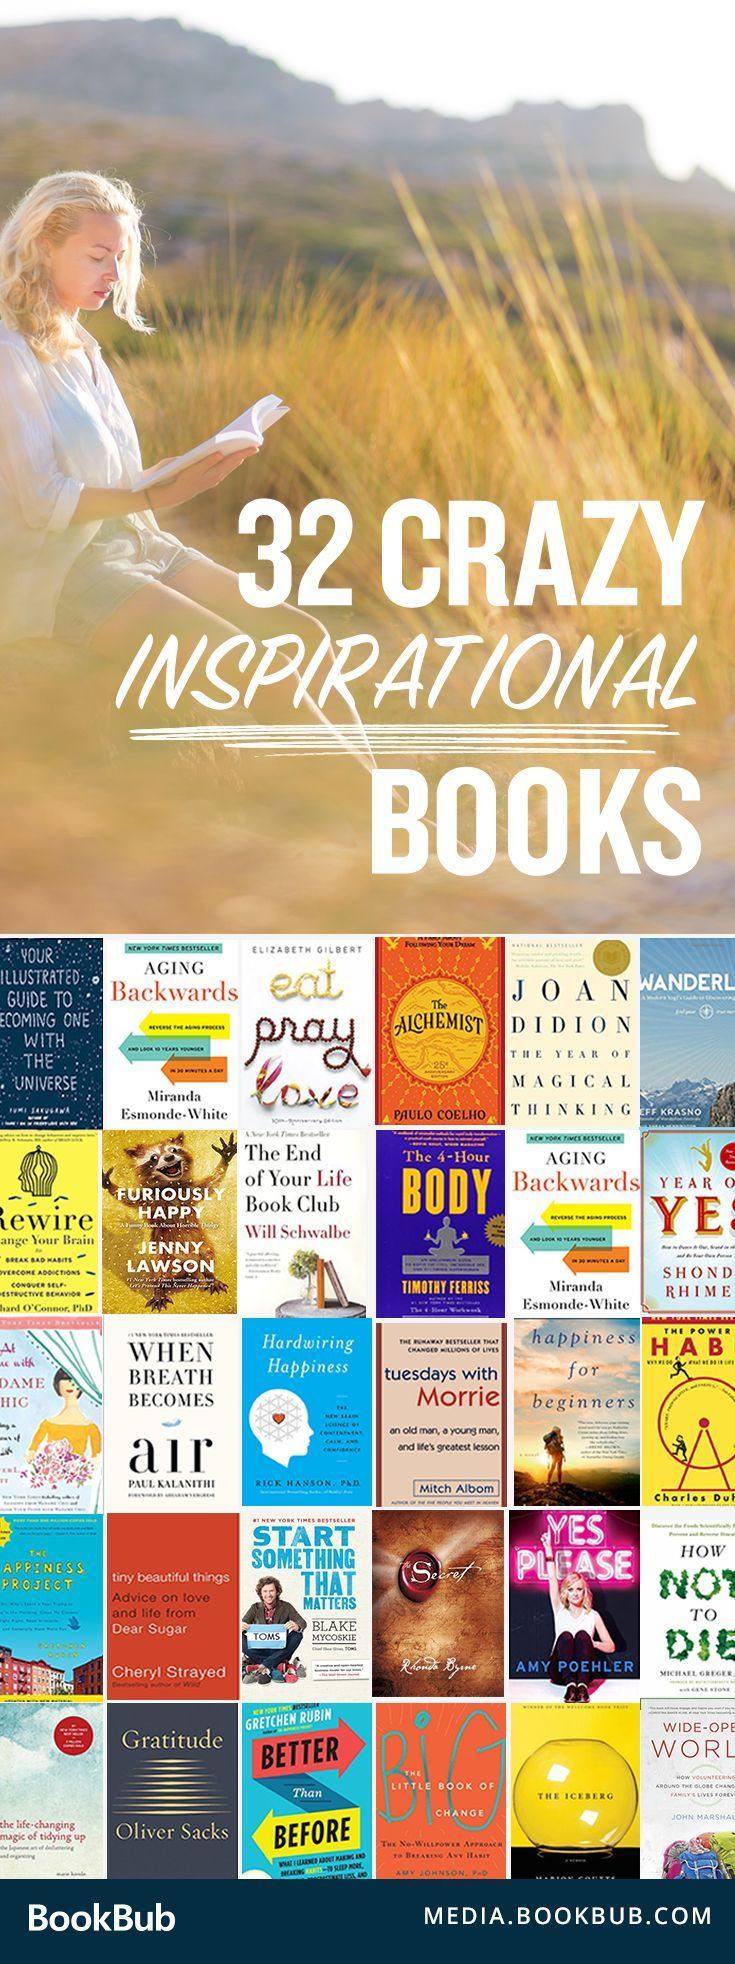 32 Crazy Inspirational Books To Read Including Self Help Books, Memoirs  And Reads With